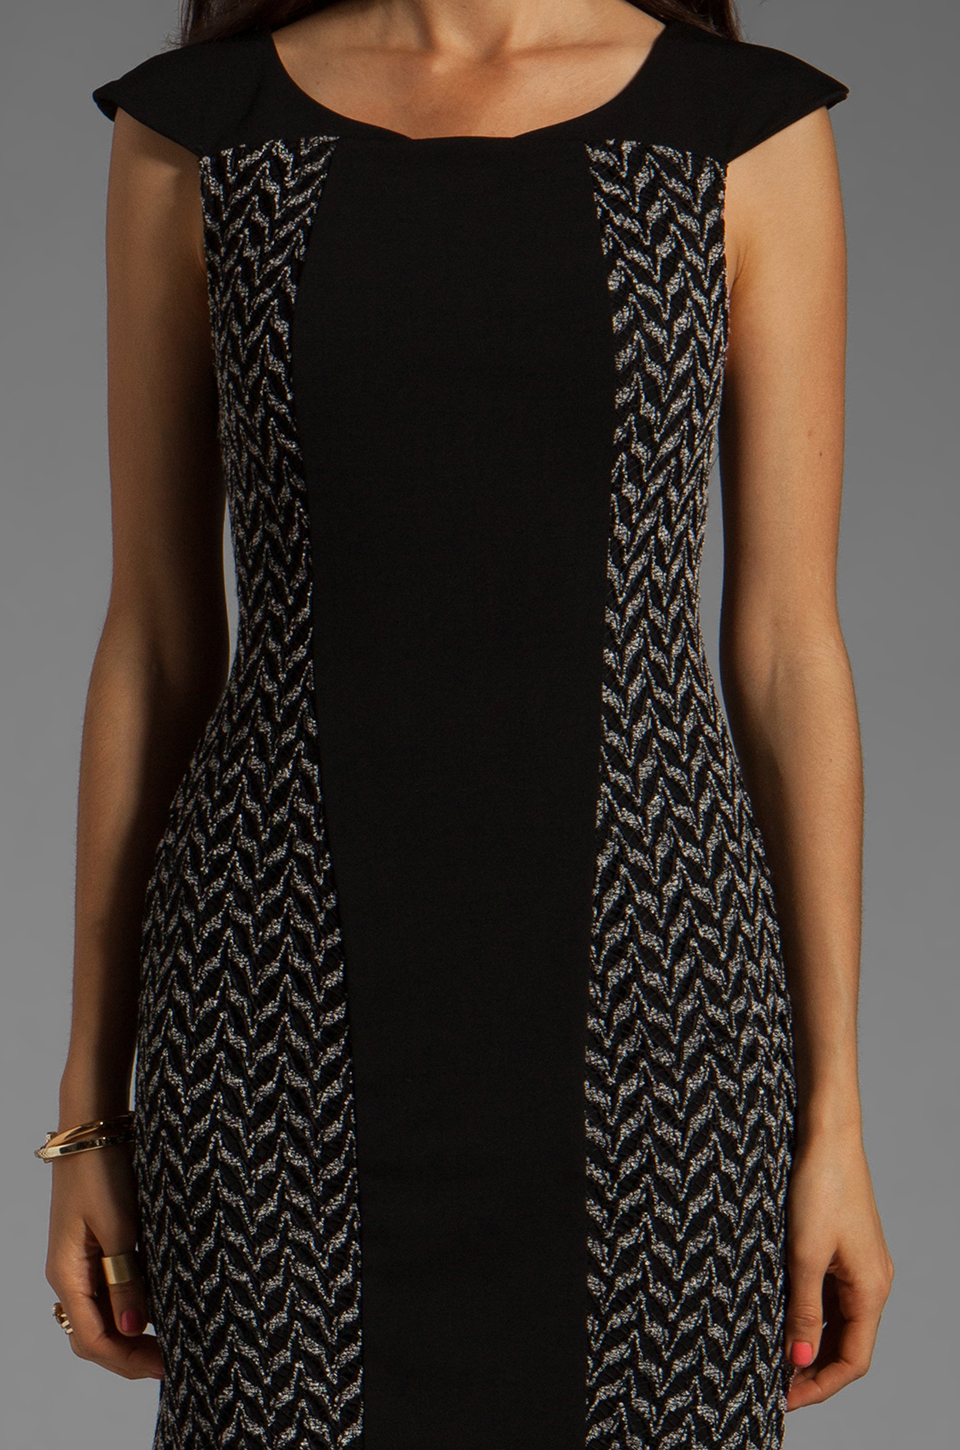 Ladakh Lace Dreamer Dress in Black